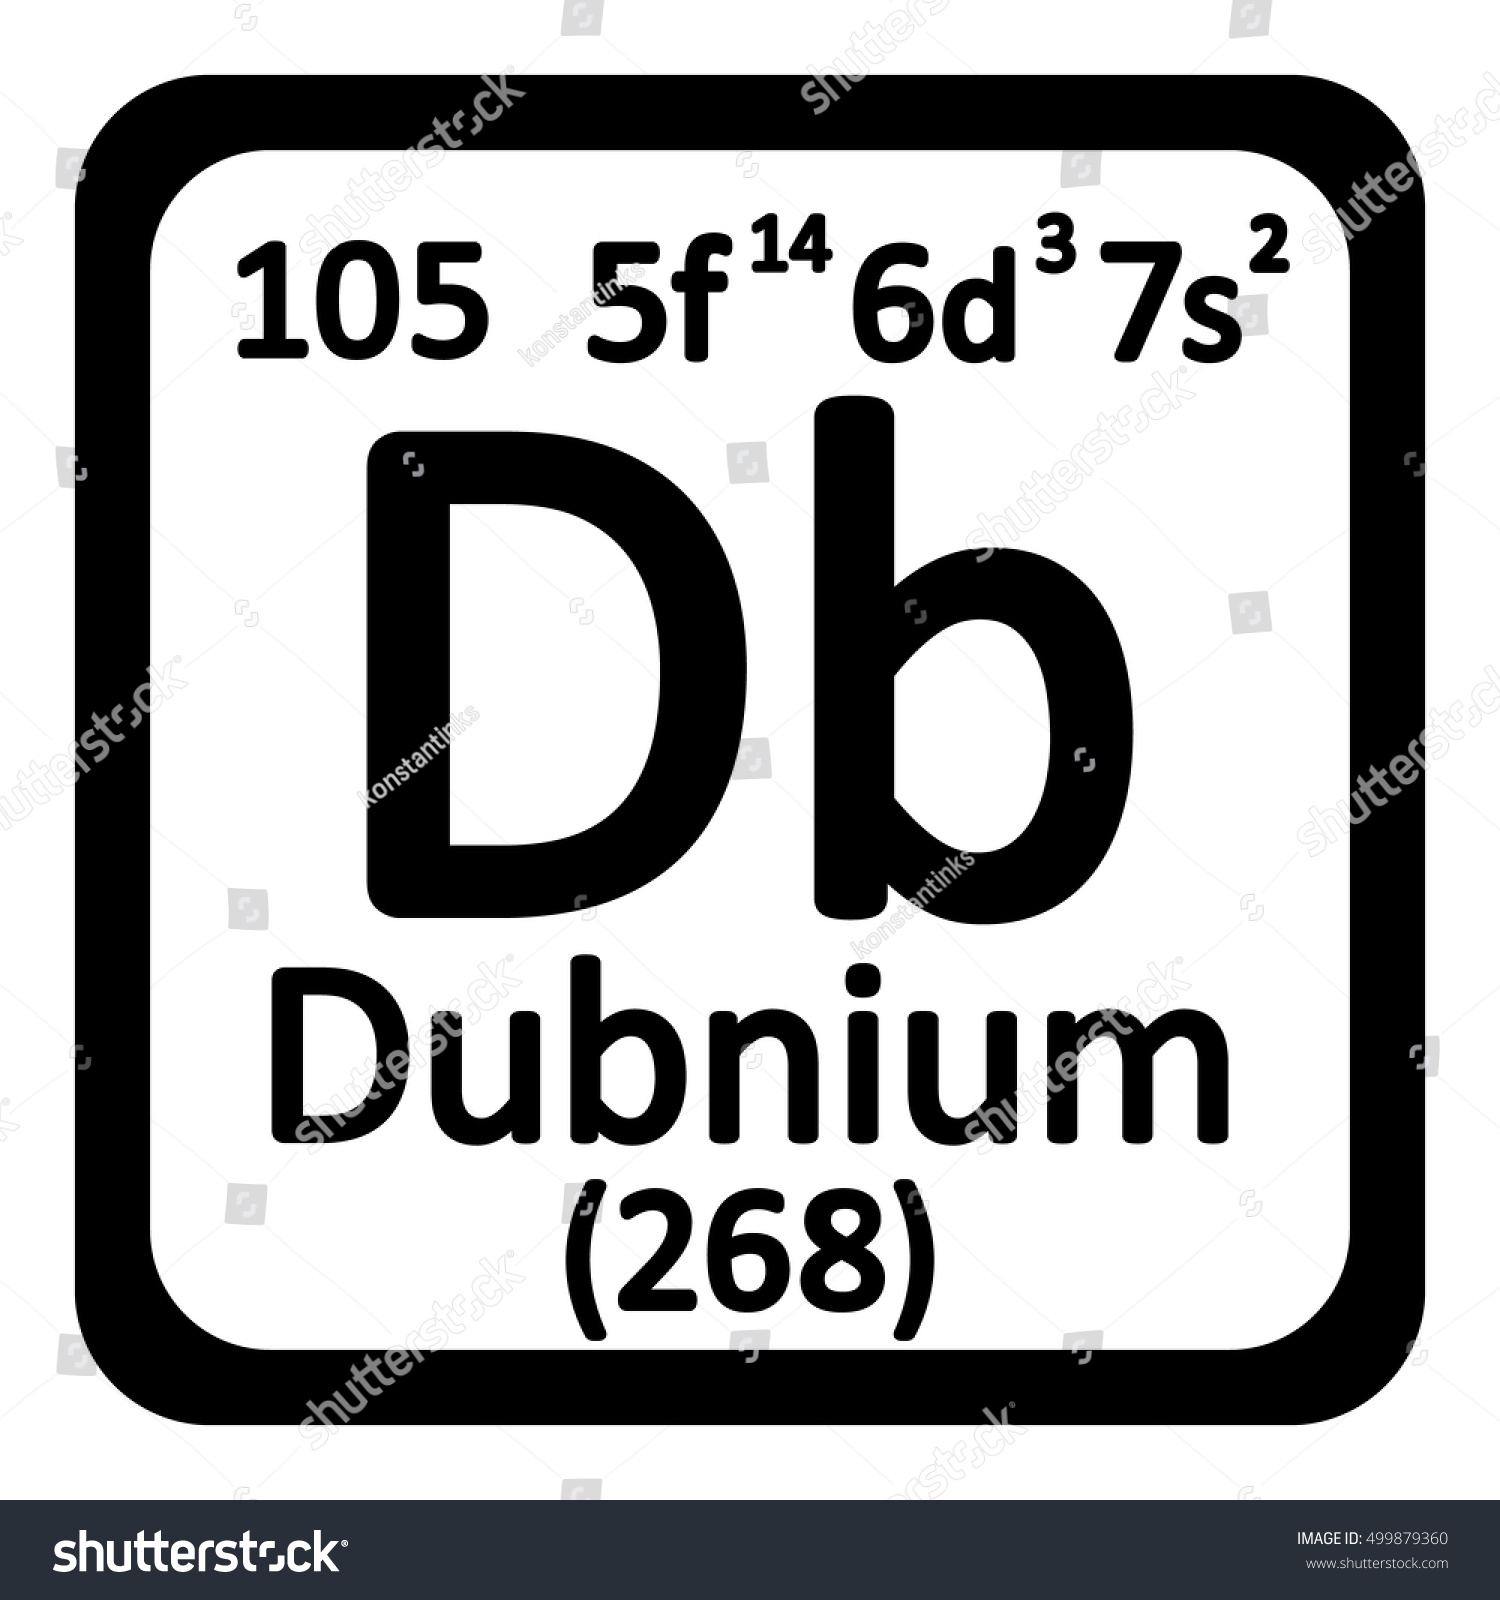 Dubnium periodic table image collections periodic table images periodic table element dubnium icon on stock vector 499879360 periodic table element dubnium icon on white gamestrikefo Choice Image